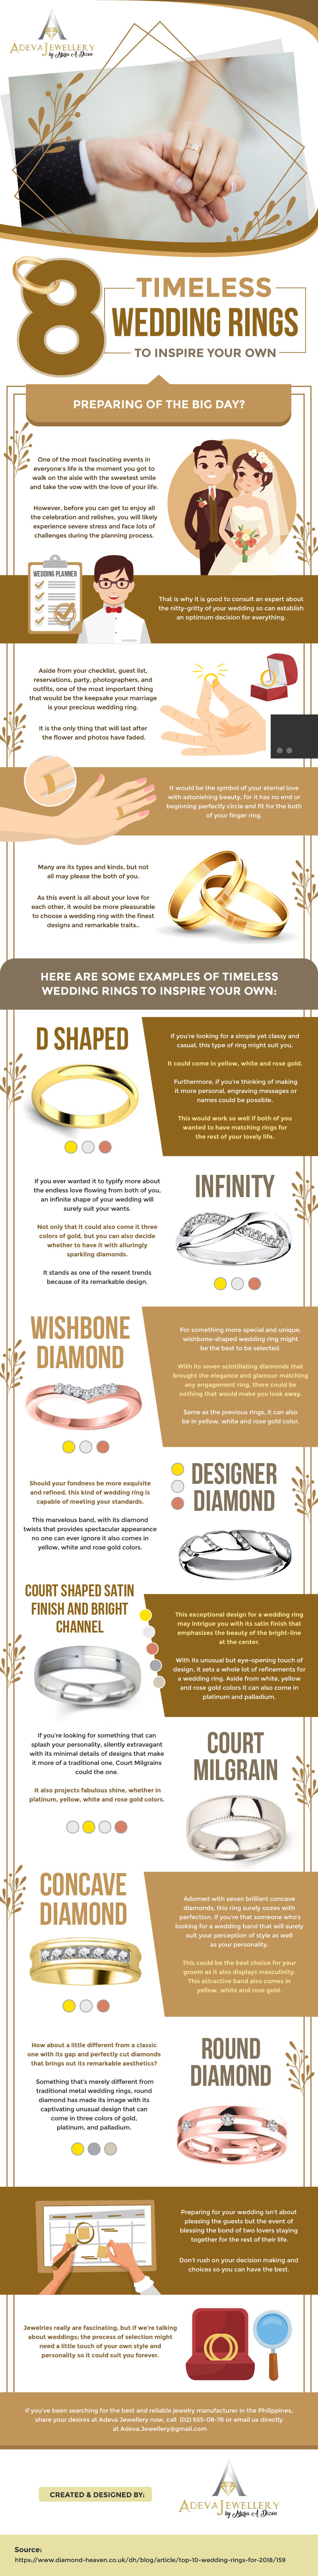 8 Timeless Wedding Rings to Inspire Your Own.png